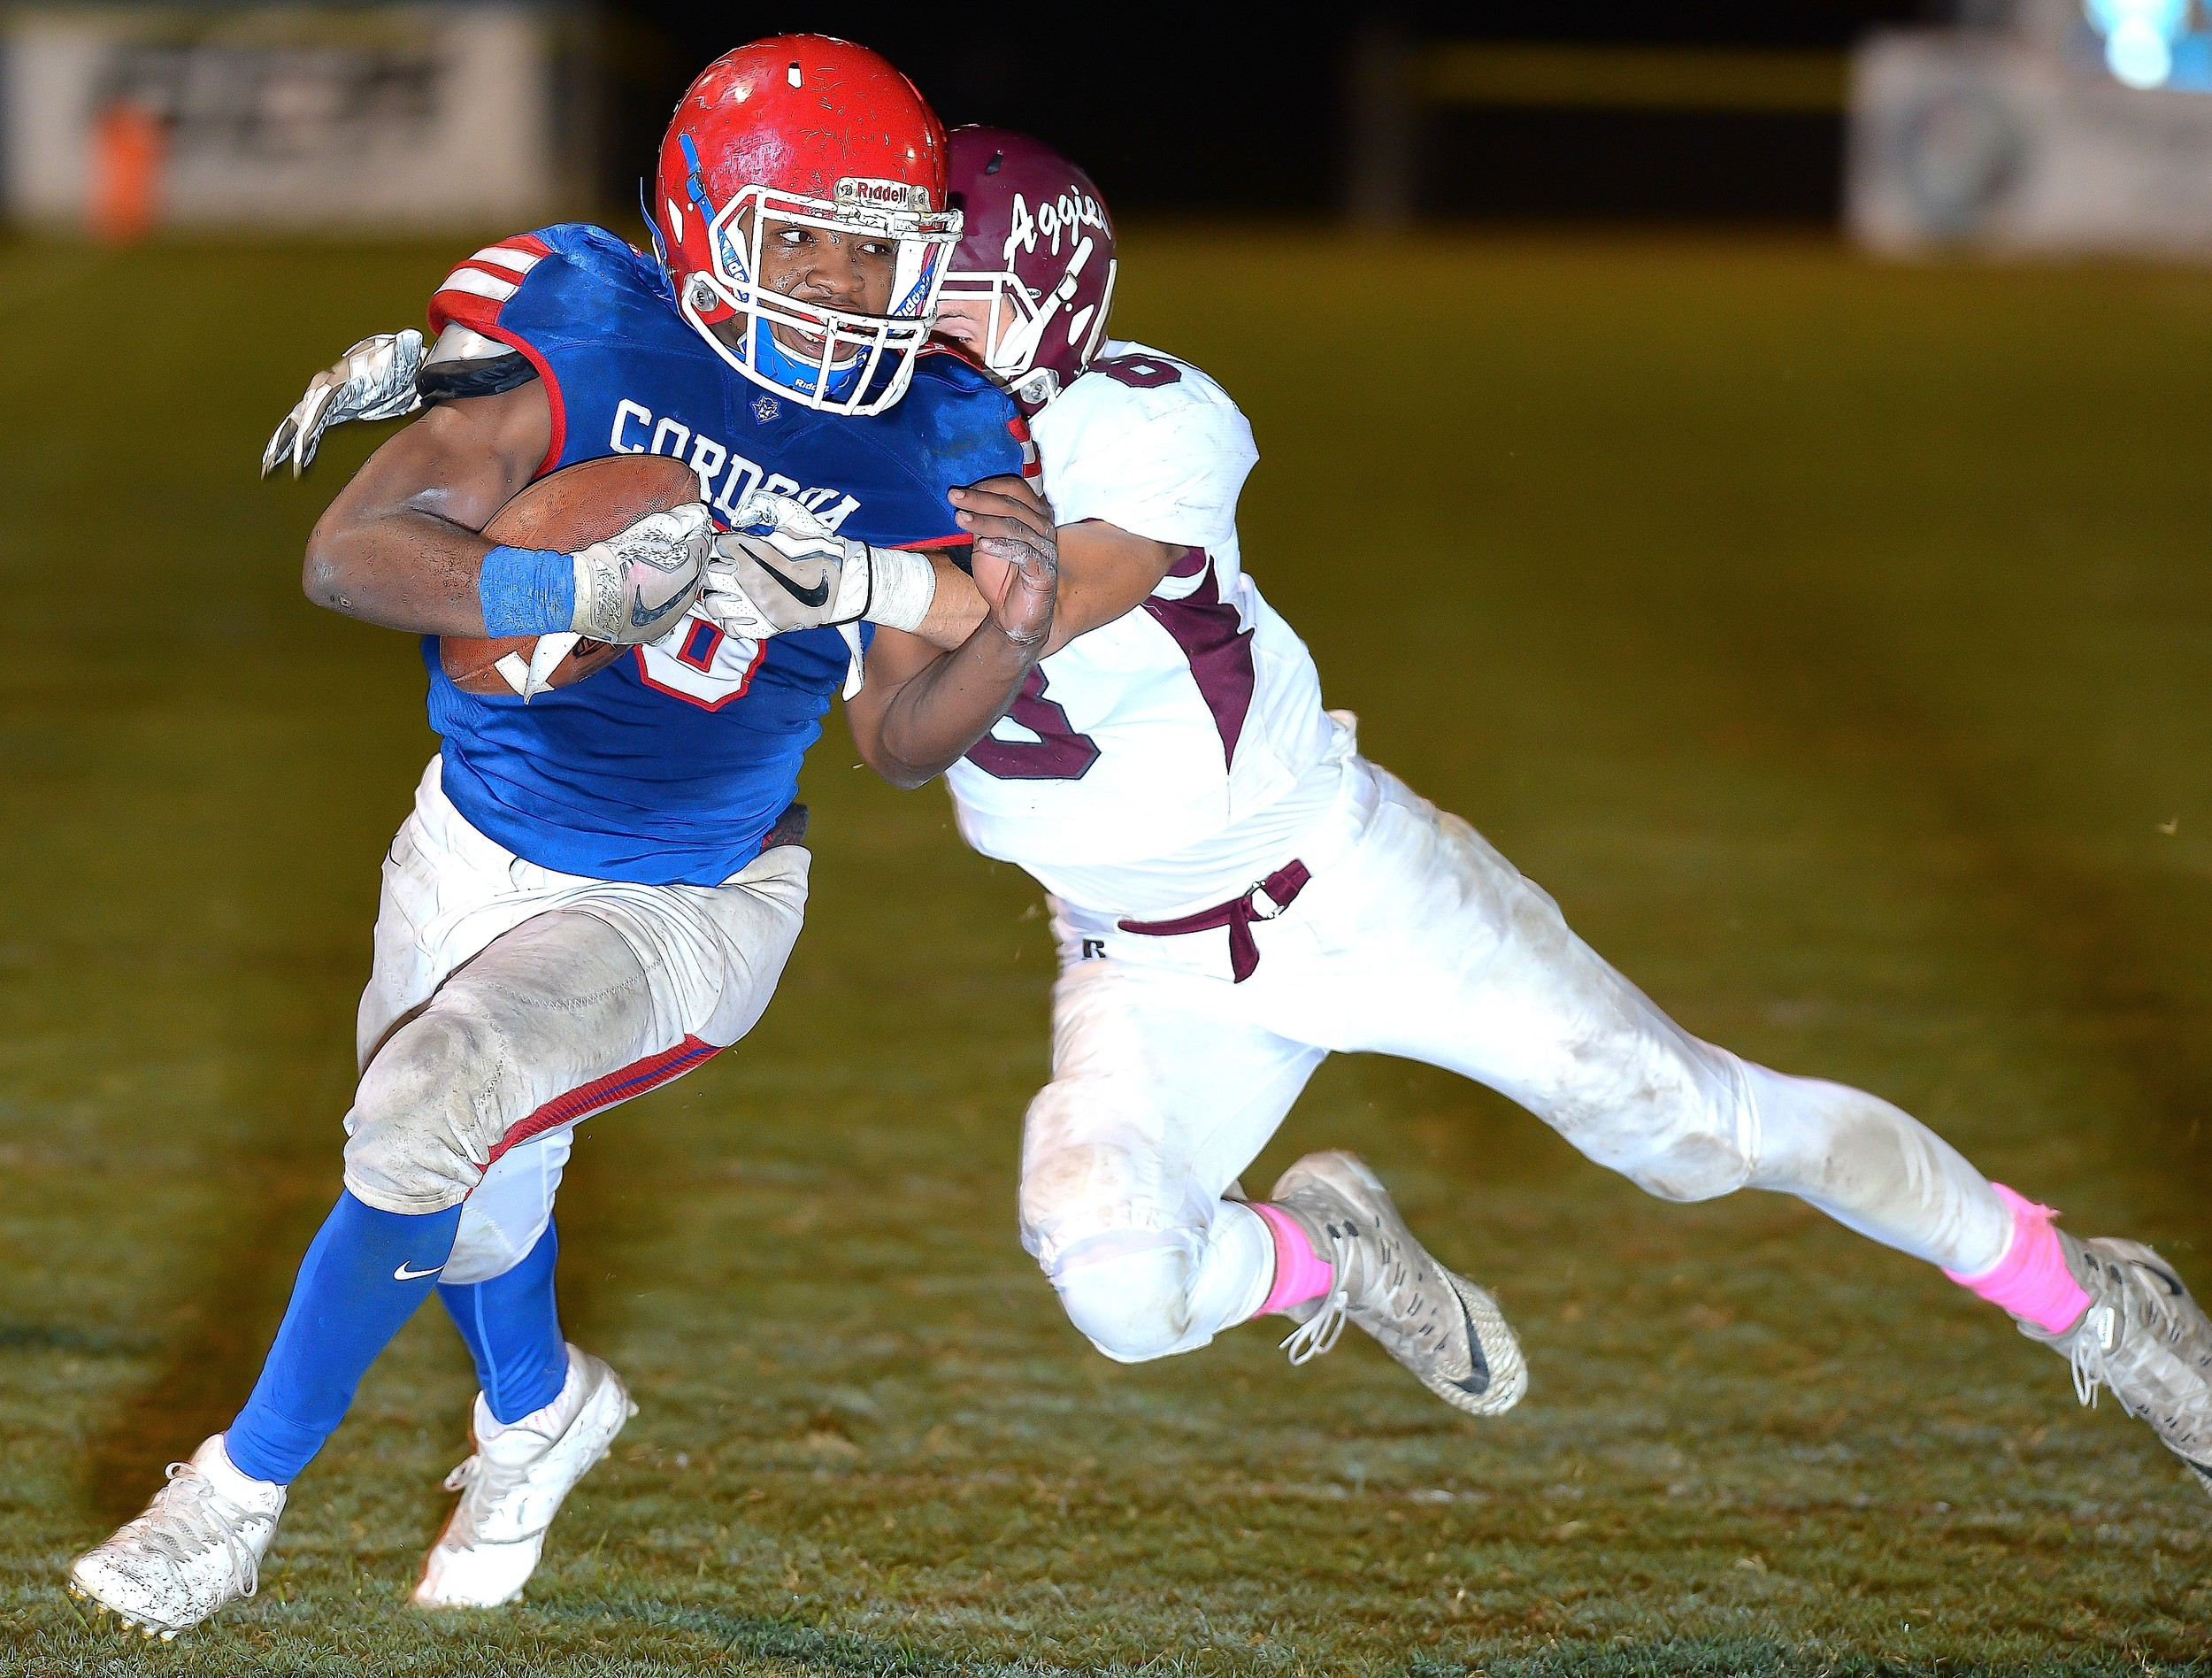 Cordova's Javion Hill battles a Hamilton defender Friday night. Hill picked up 153 yards and two touchdowns in the Blue Devils' 34-28 win.